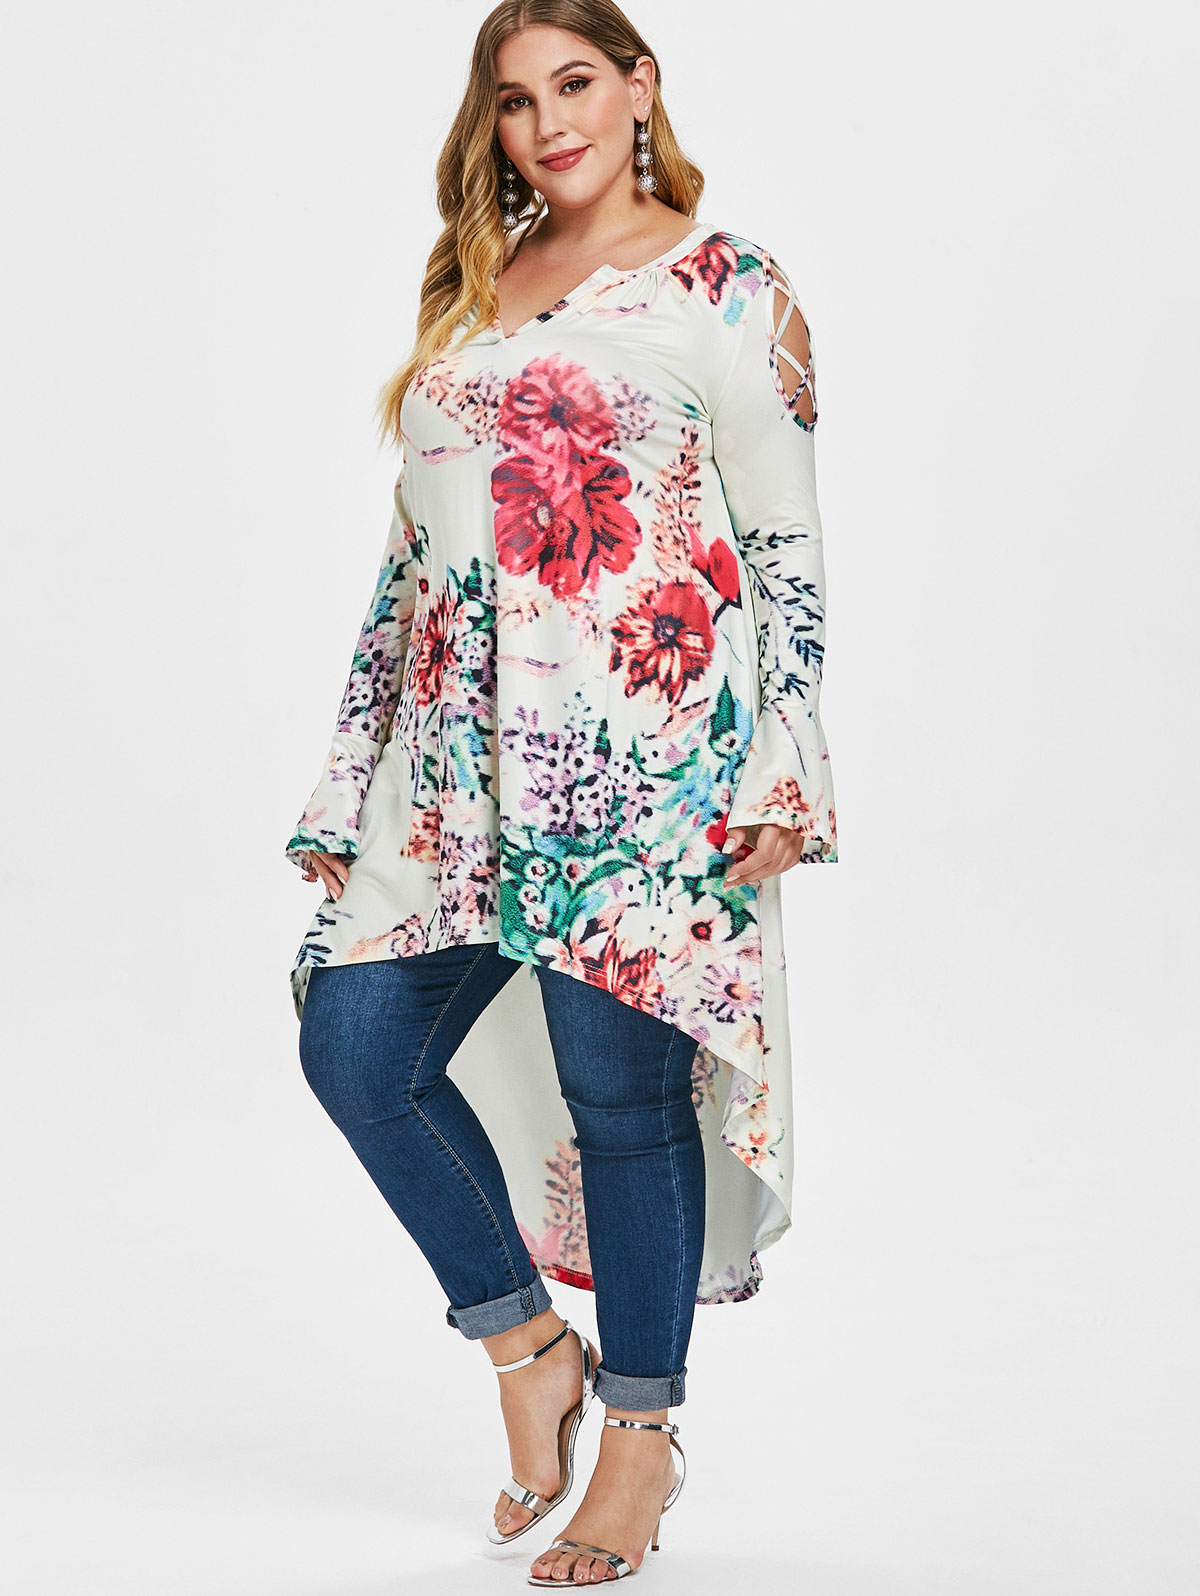 1e7745e2bbe Details about Womens Floral Print High Low V Neck T-shirt Top Blouse Long  Sleeve Plus Size Tee